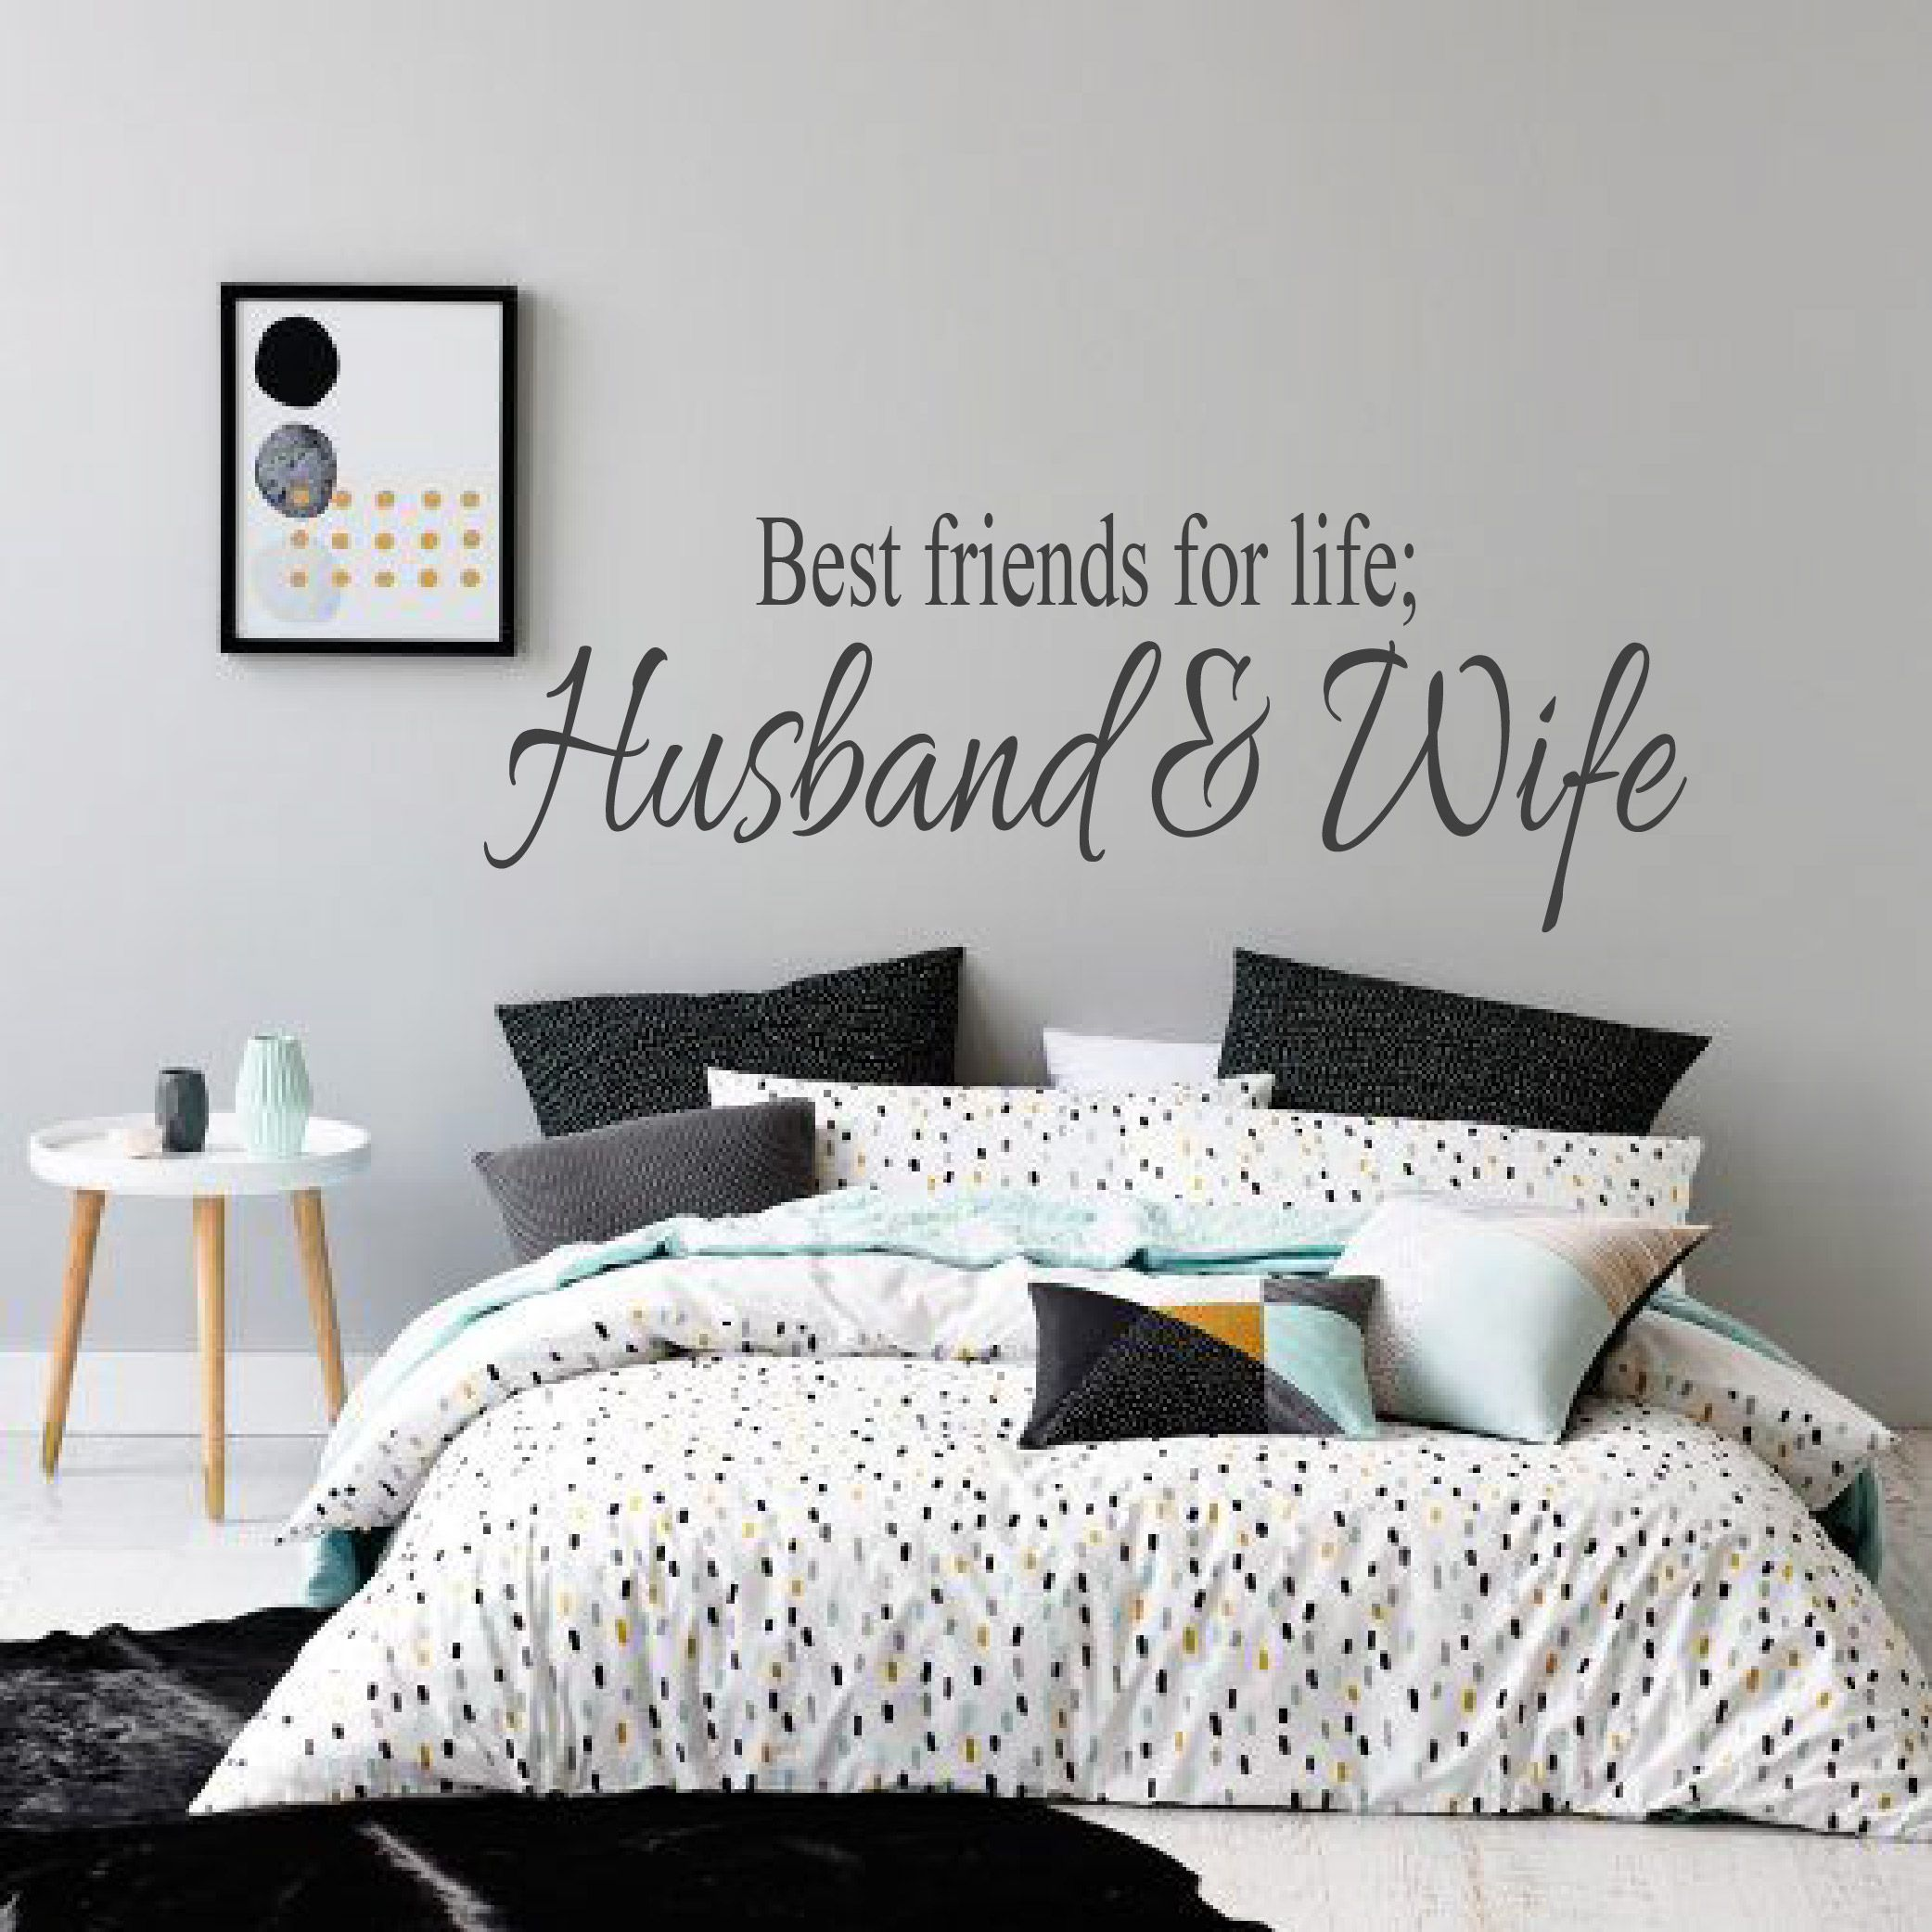 Lovely Husband And Wife Bedroom Wall Decal, Wedding Gifts And Ideas. Love Quotes,  Husband